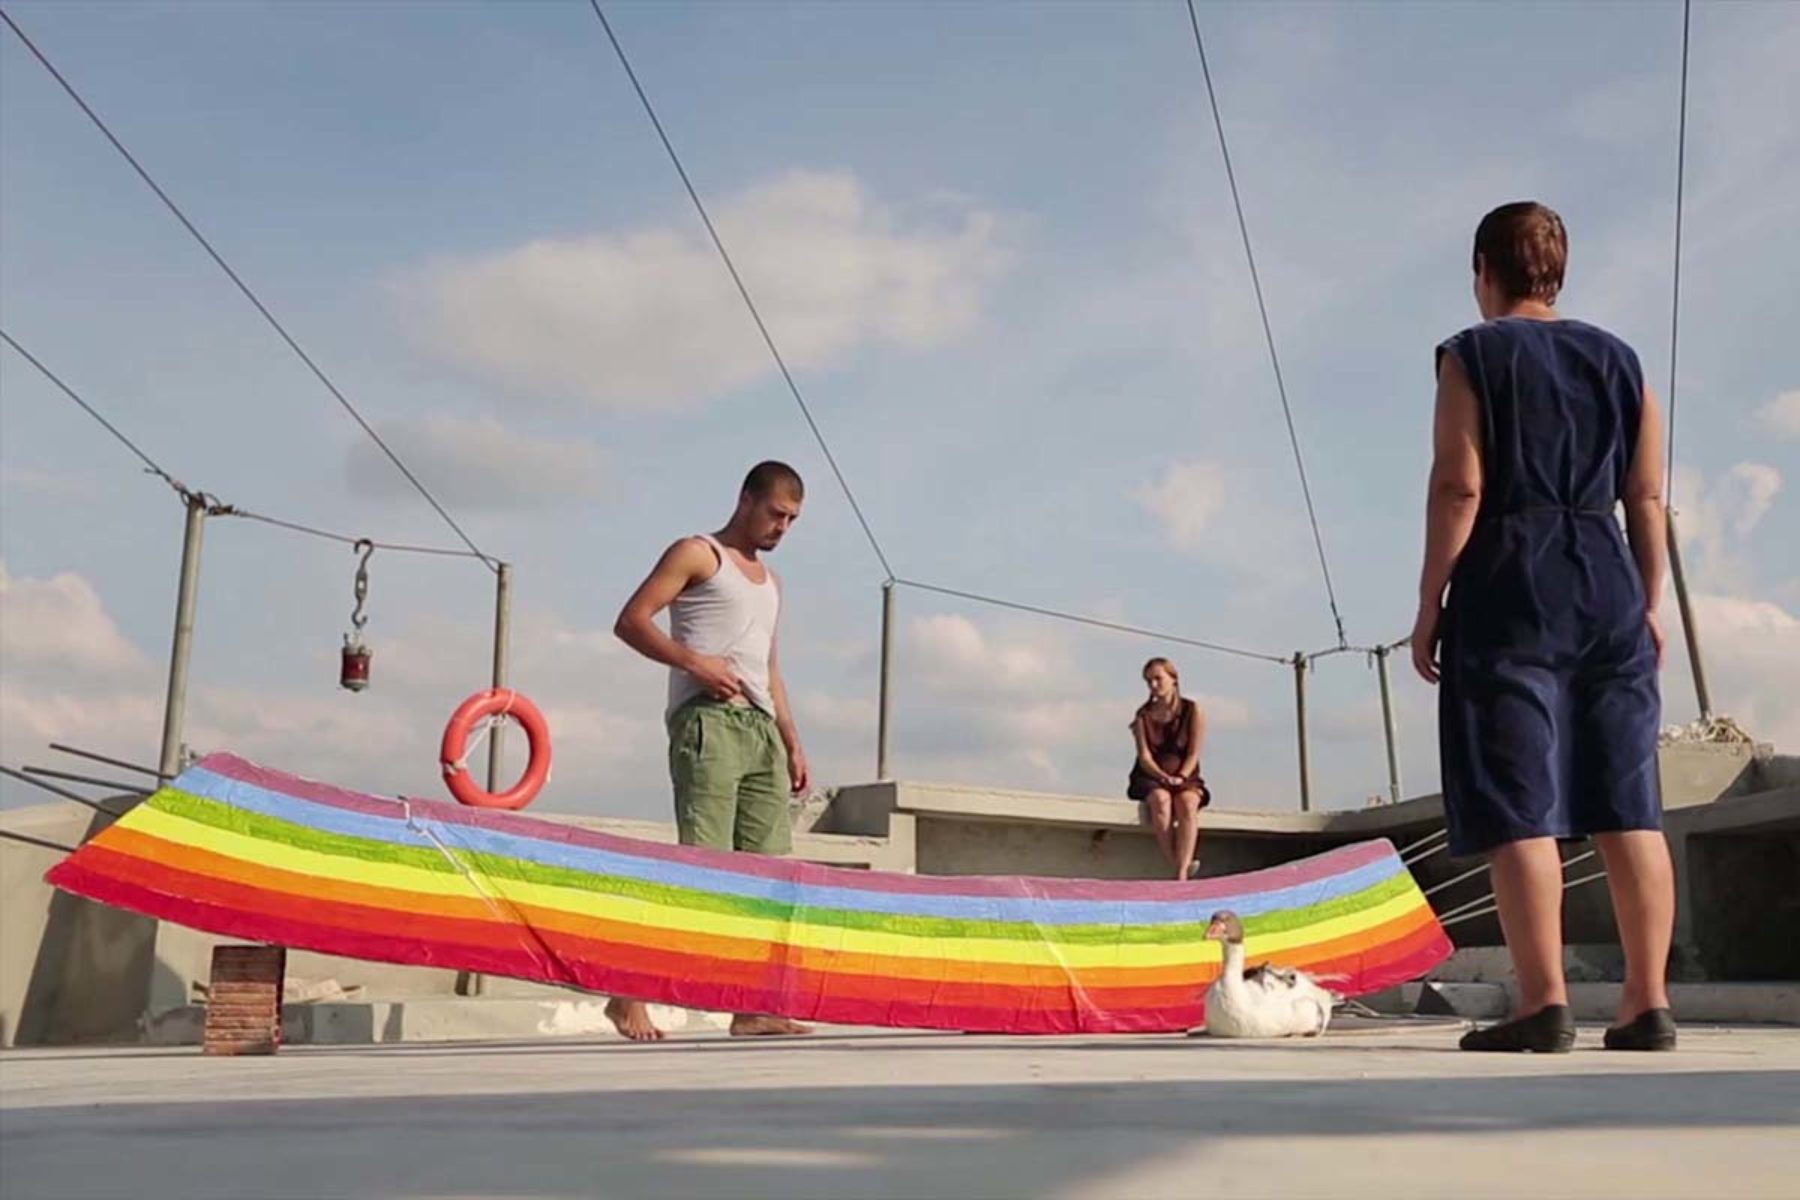 Driant Zeneli, Those who tried to put the rainbow back in the sky, 2012, video, frame 1